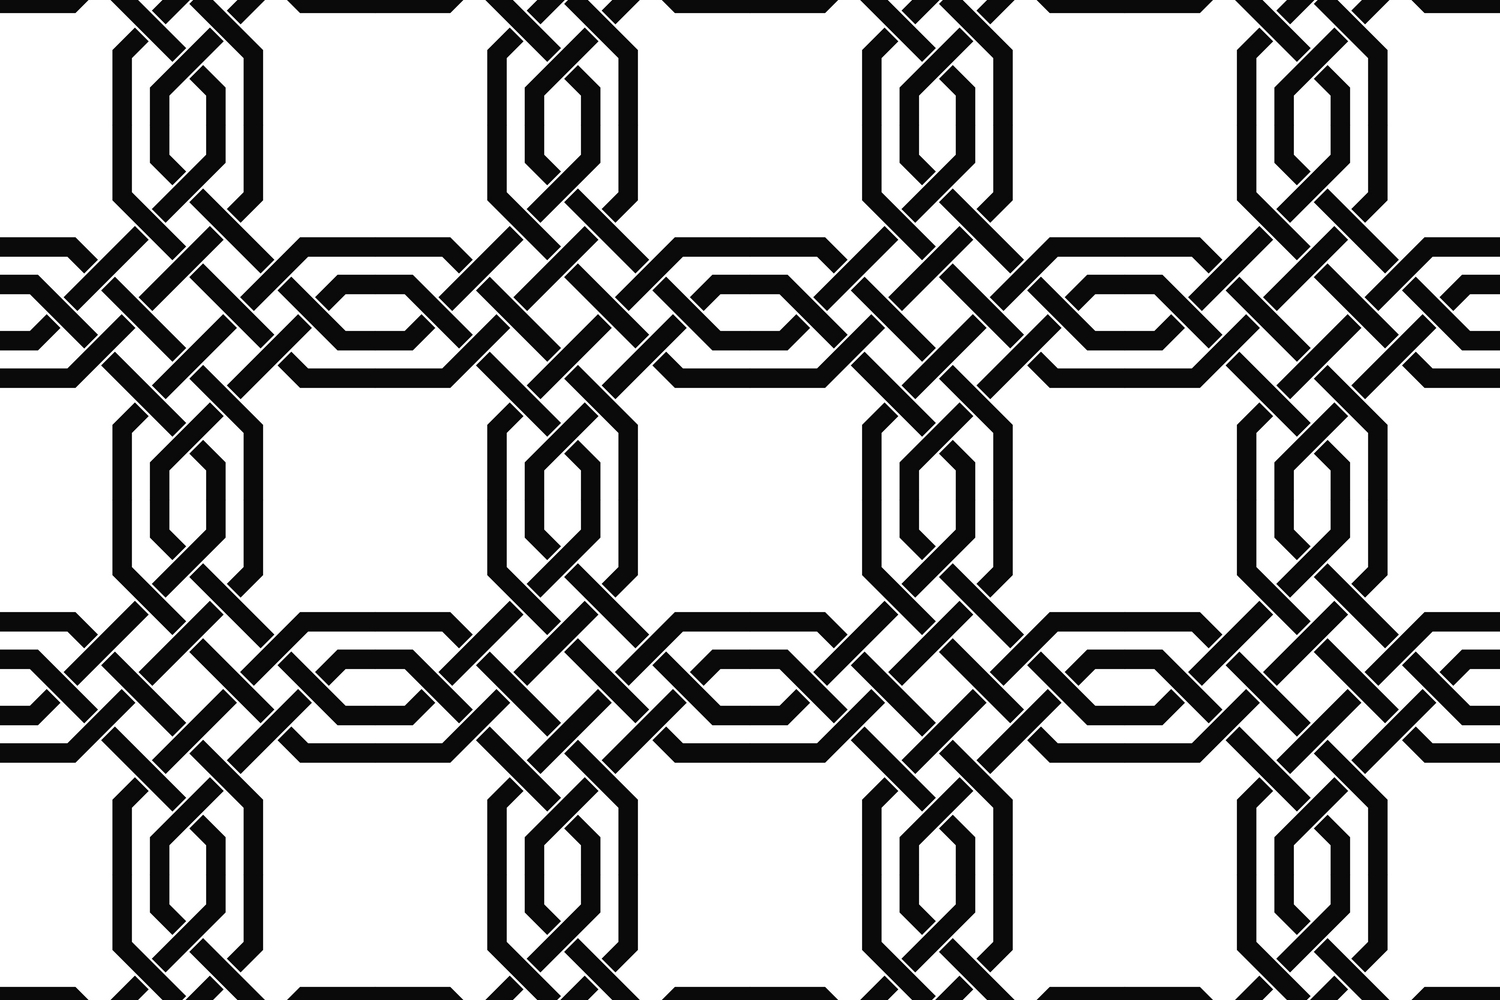 75 Monochrome Geometrical Patterns AI, EPS, JPG 5000x5000 example image 11